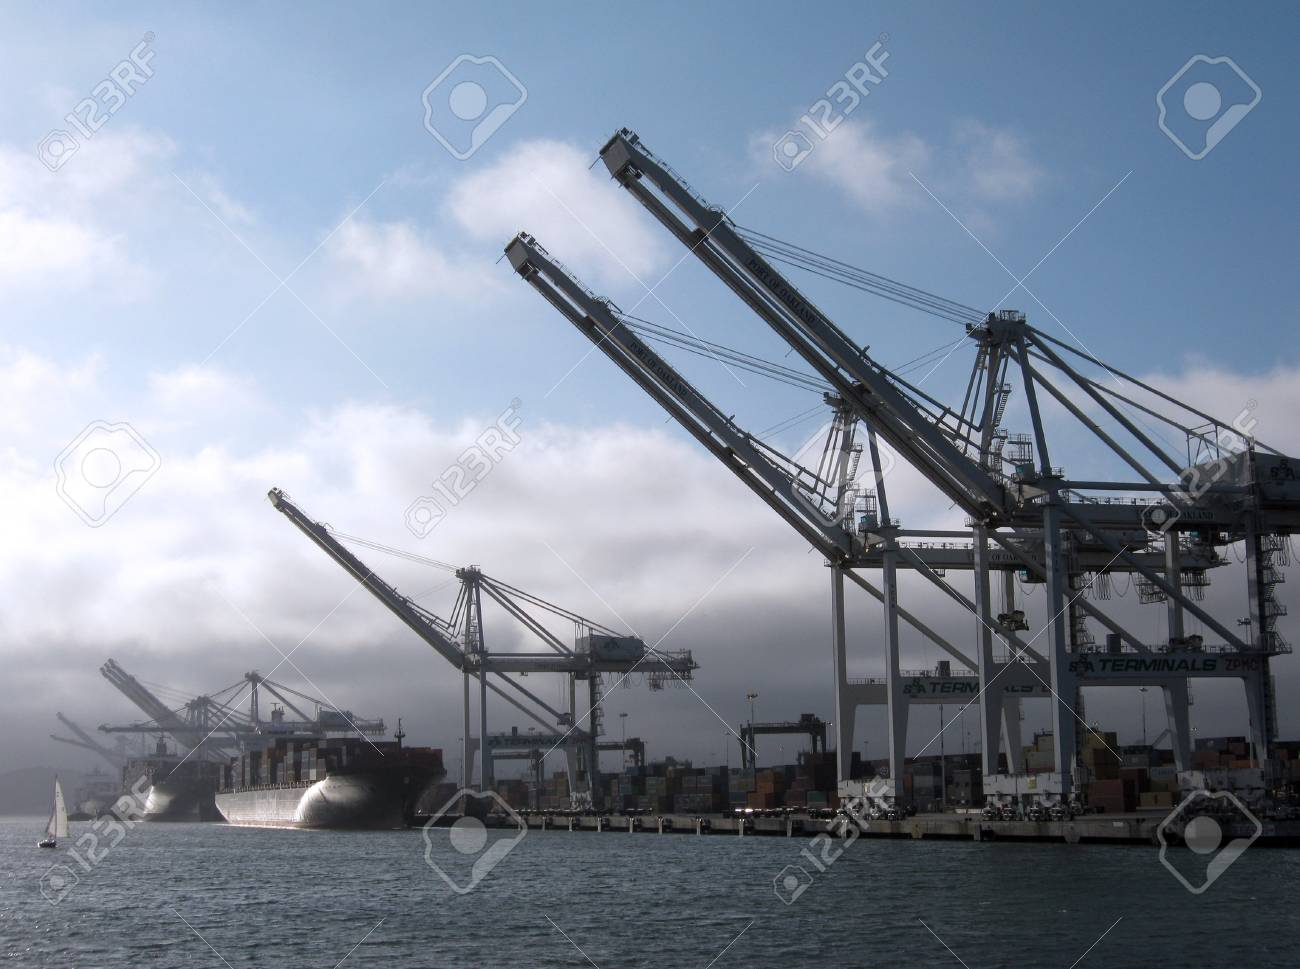 Shipping Cargo Boats line up in harbor under giants unloading cranes in Oakland Harbor with small sail boat passing by.  Taken August 4, 2010 Oakland California. Stock Photo - 7660007